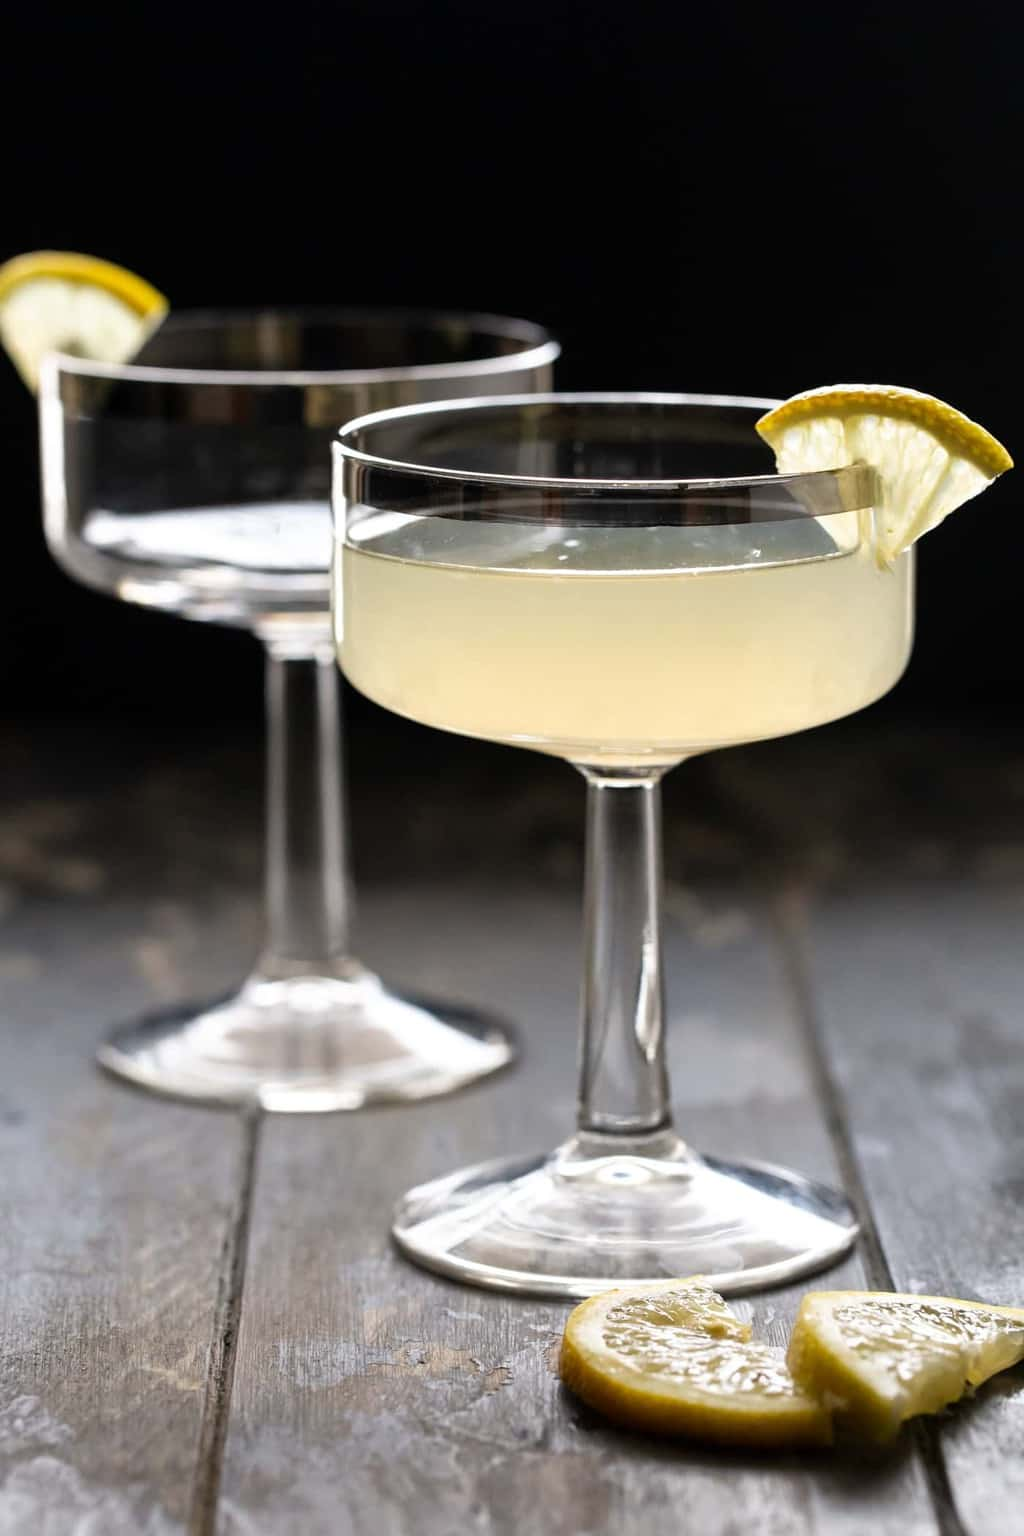 Ginger Pear Martini recipe in a coupe glass with a silver rim on a dark background.